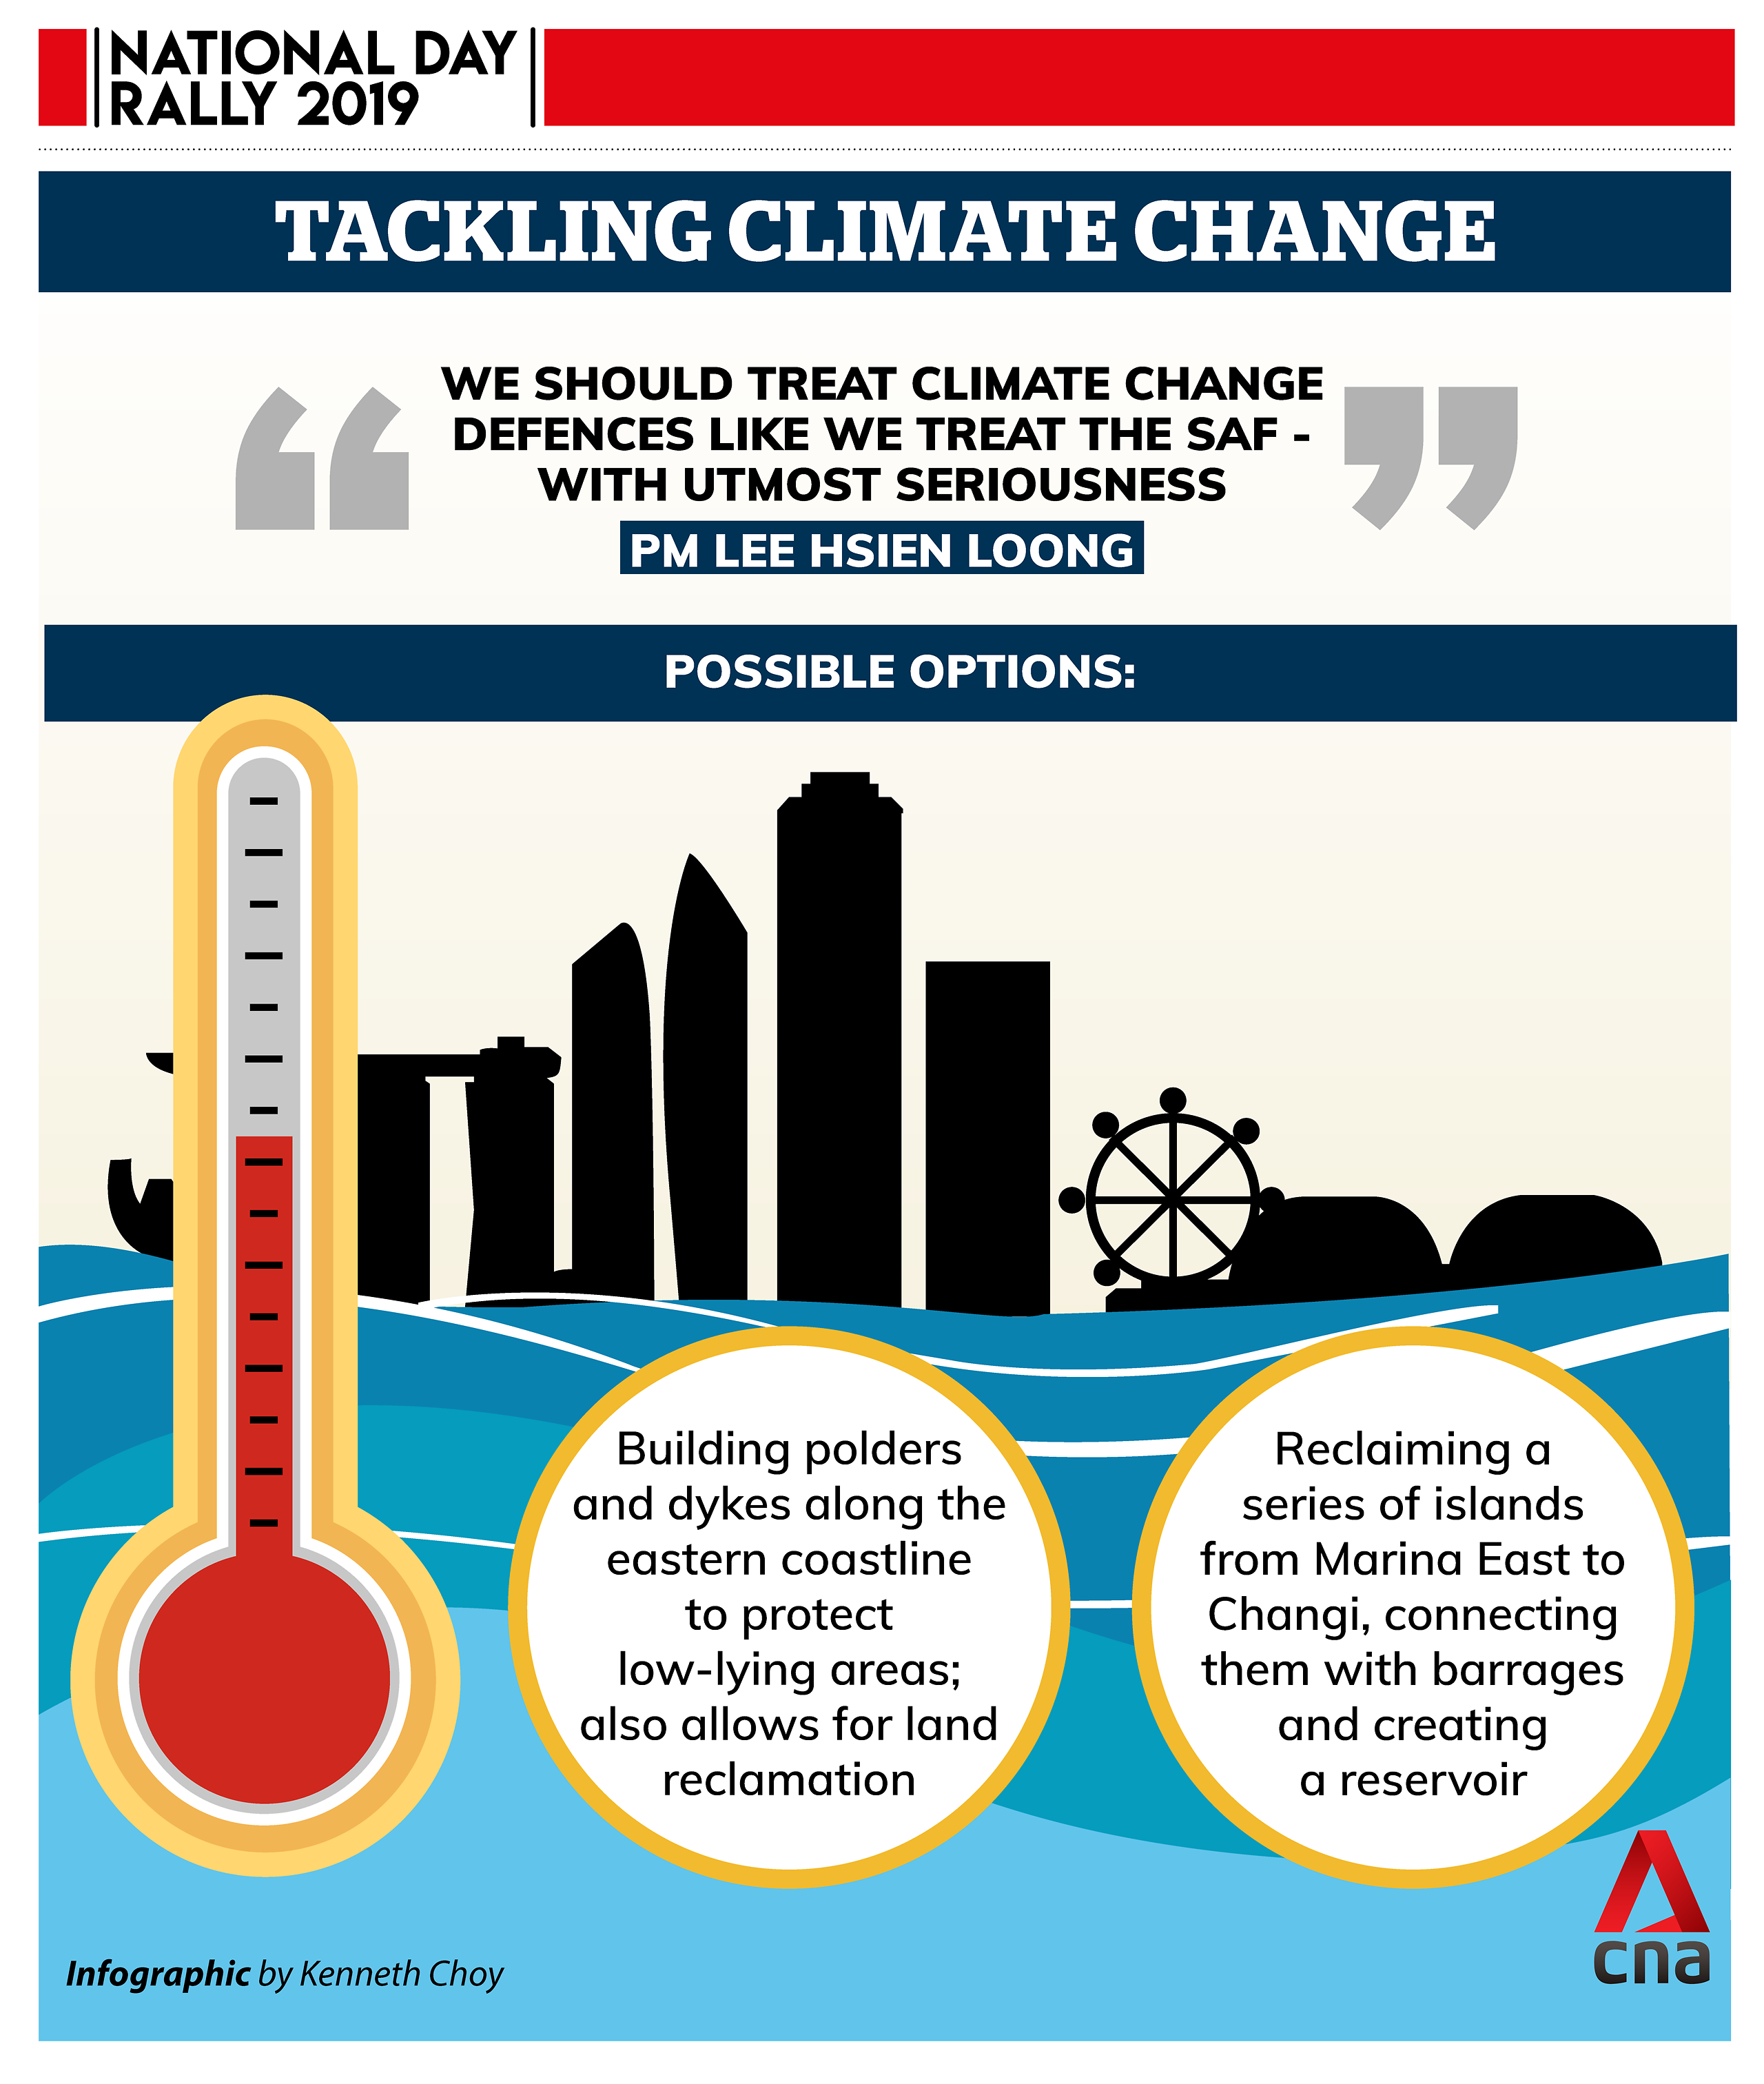 NDR2019 - Climate change infographic